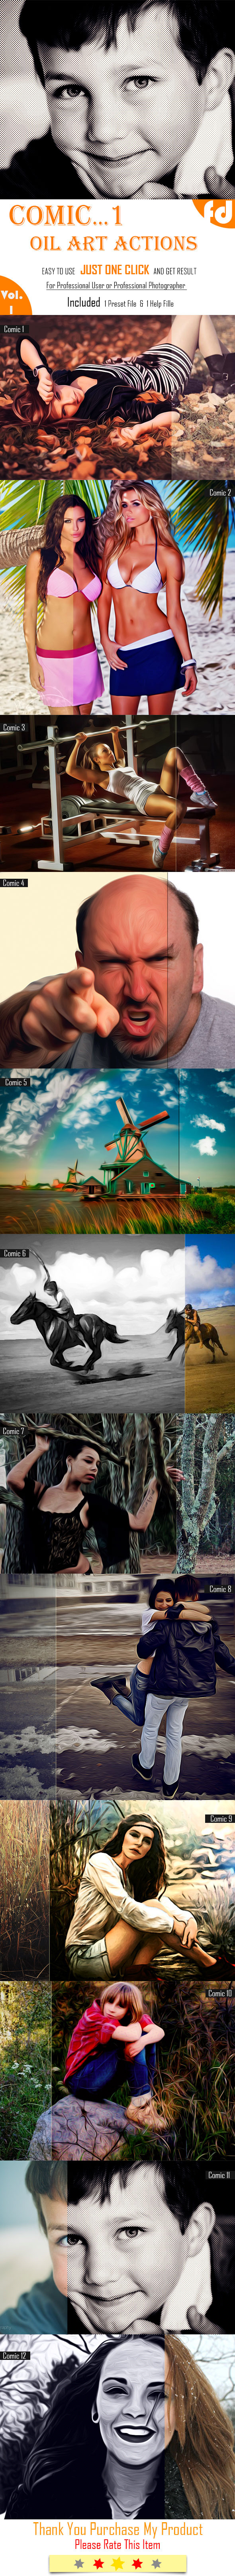 GraphicRiver Comic Oil Art Actions 10868512